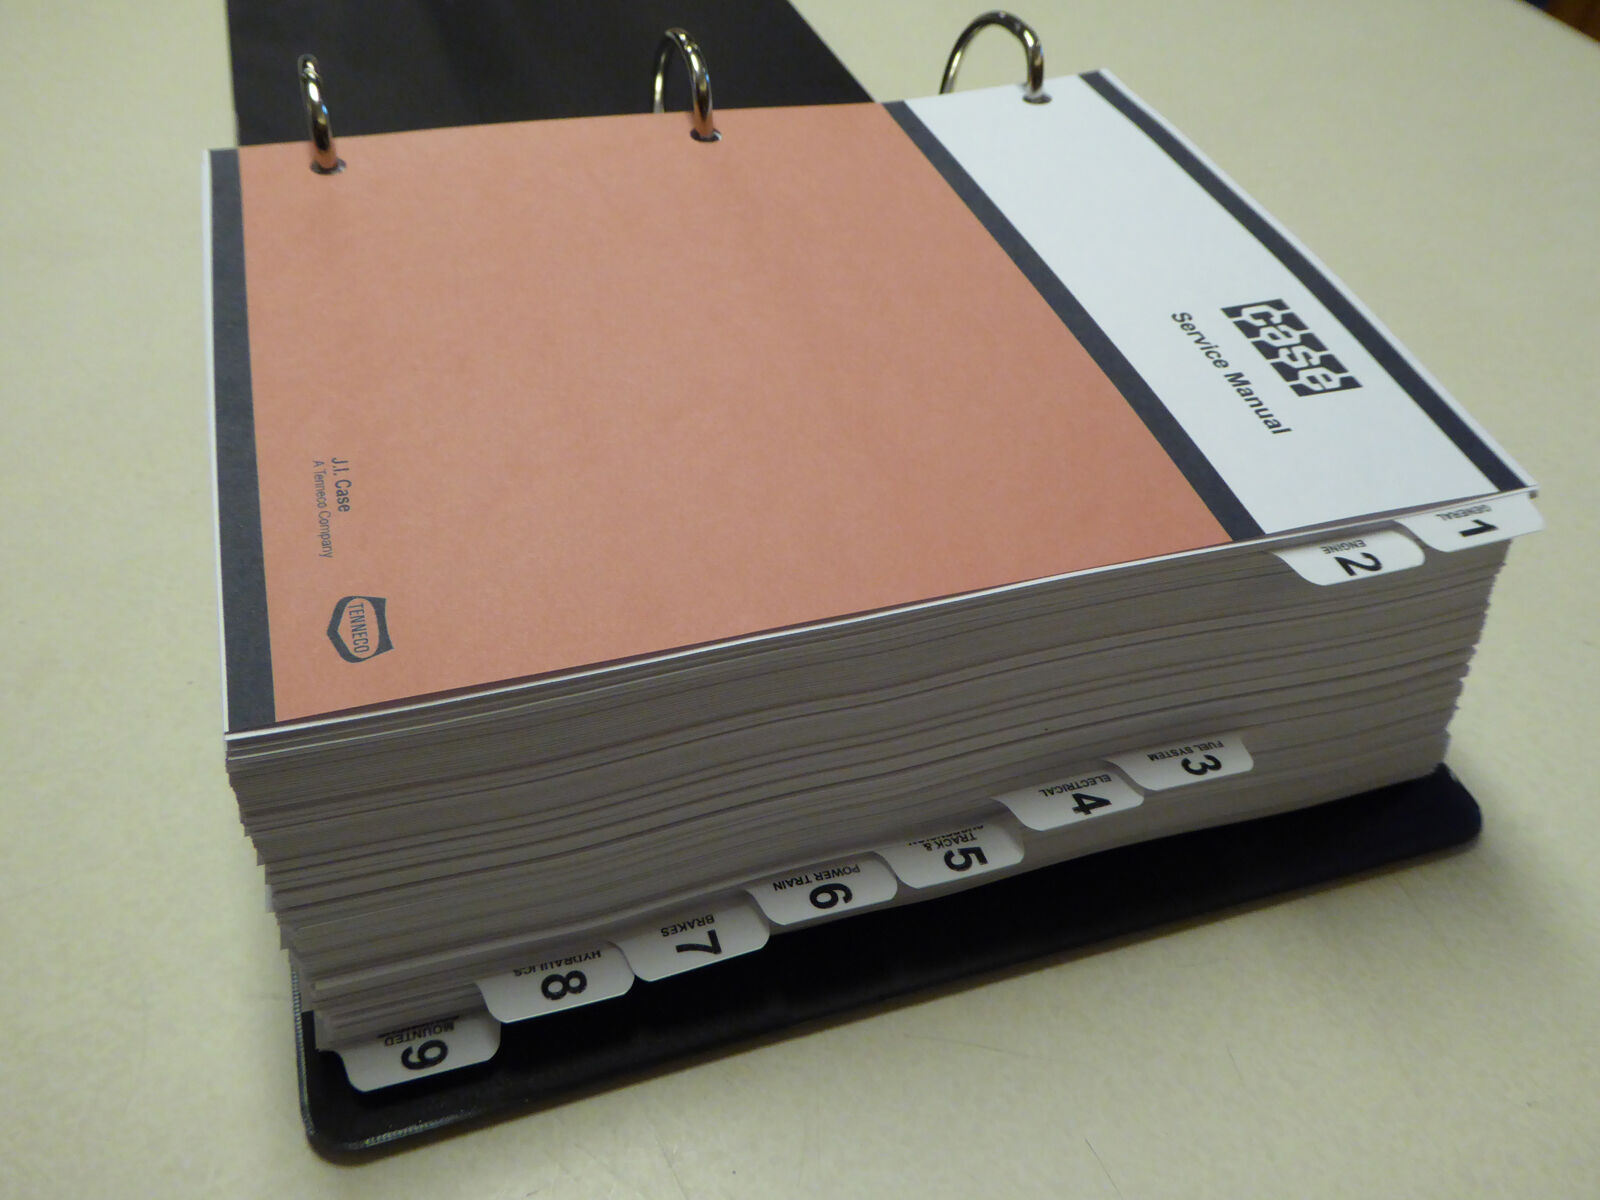 Case 1080 1080b Excavator Service Manual Repair Shop Book New With Wiring Diagrams Binder Huge 1 Of 12only 2 Available